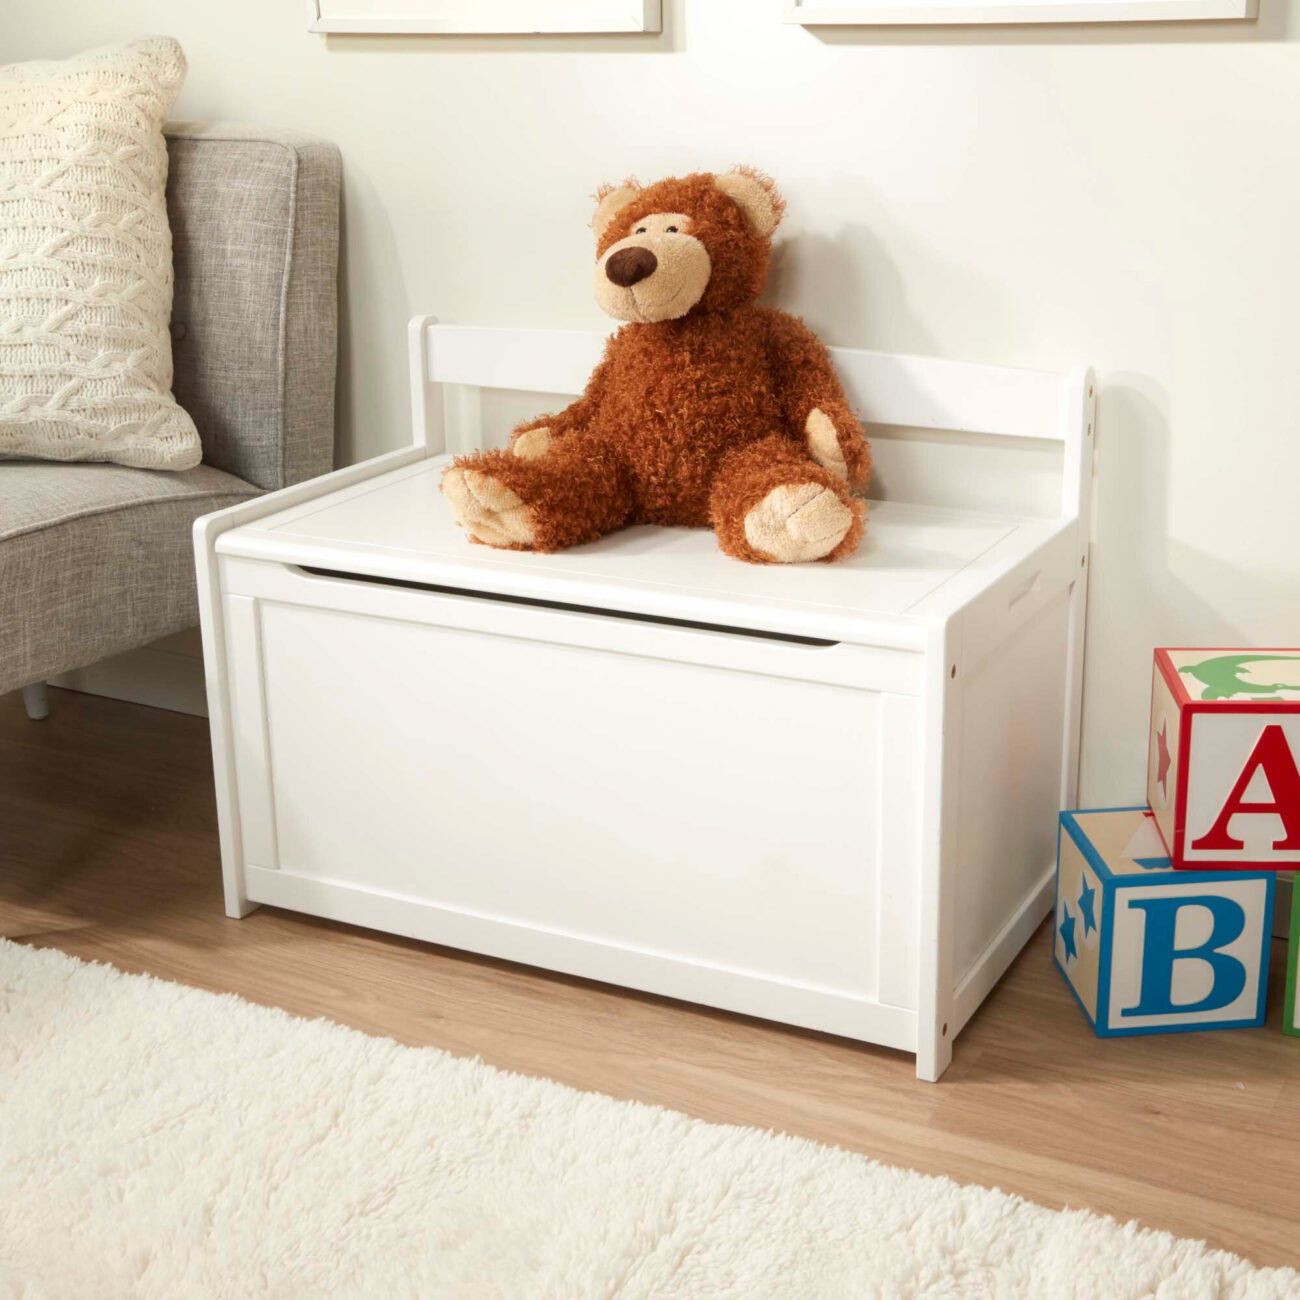 Let's be honest. Kids' toys can make a big mess. Check out these tips on toy storage and how they can keep your house as neat and tidy as possible.